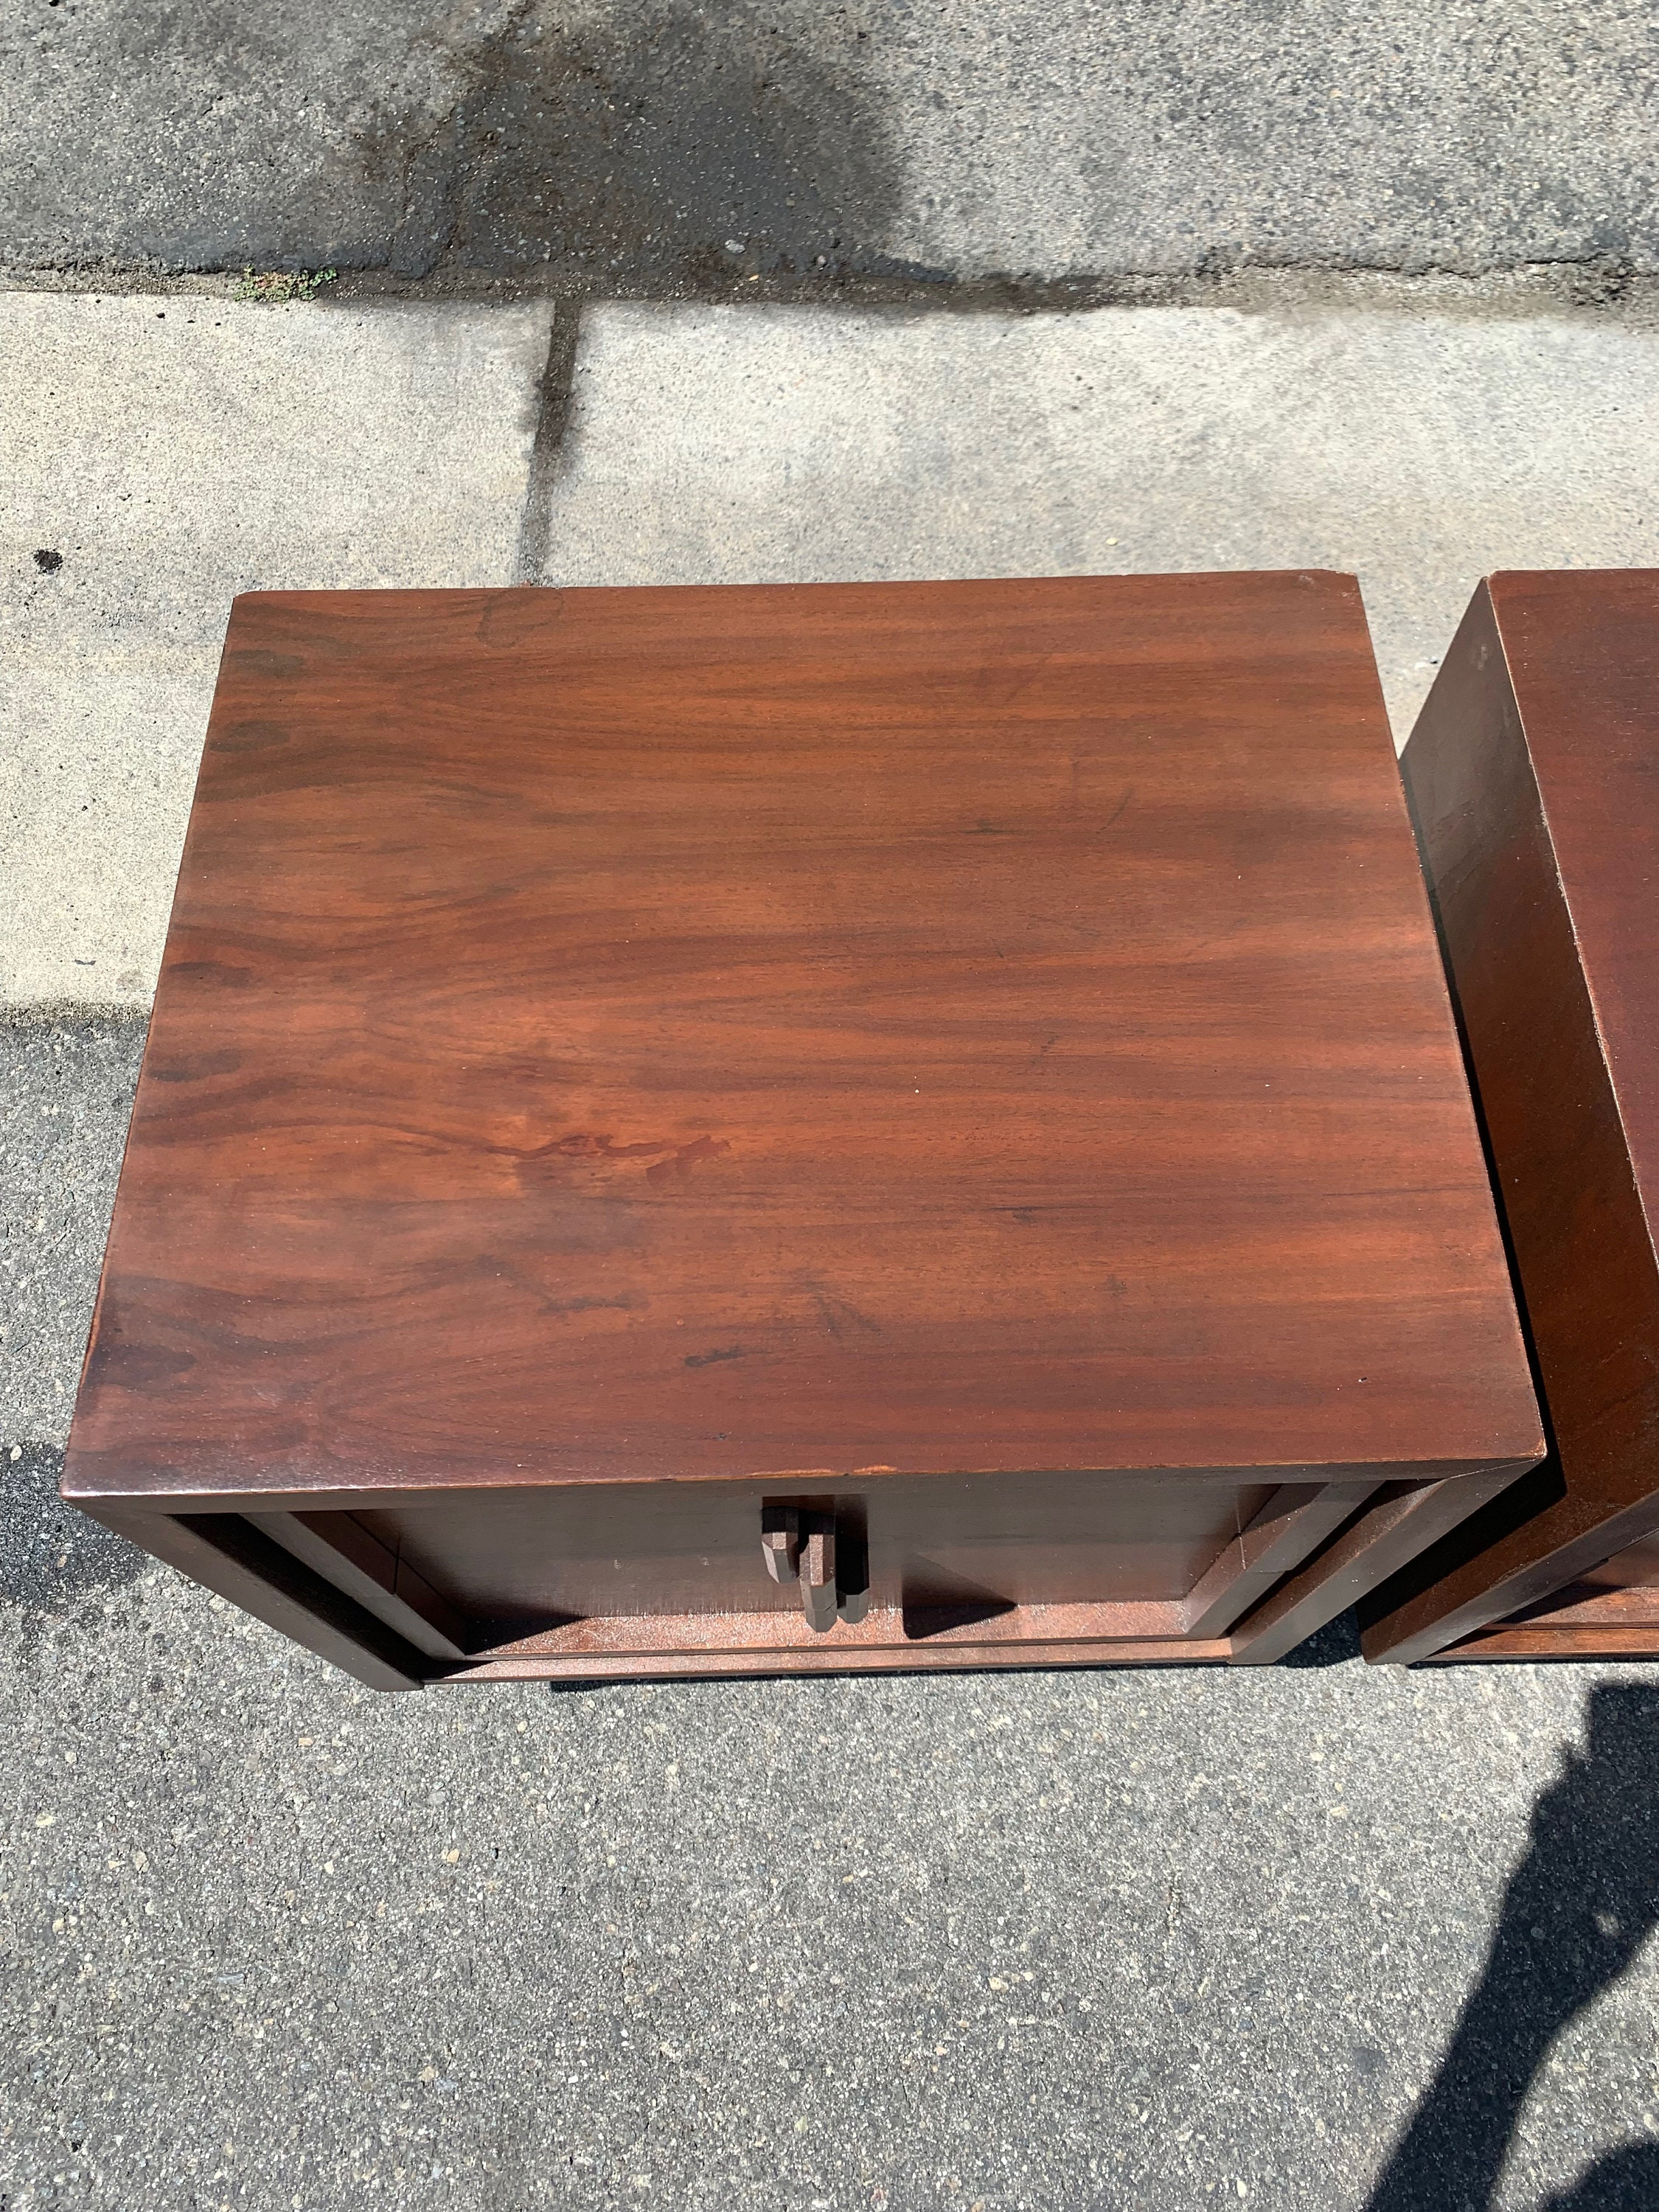 Retro Style Container Bedside Table: Pair Of Brutalist Nightstands Mid Century Modern Bedside